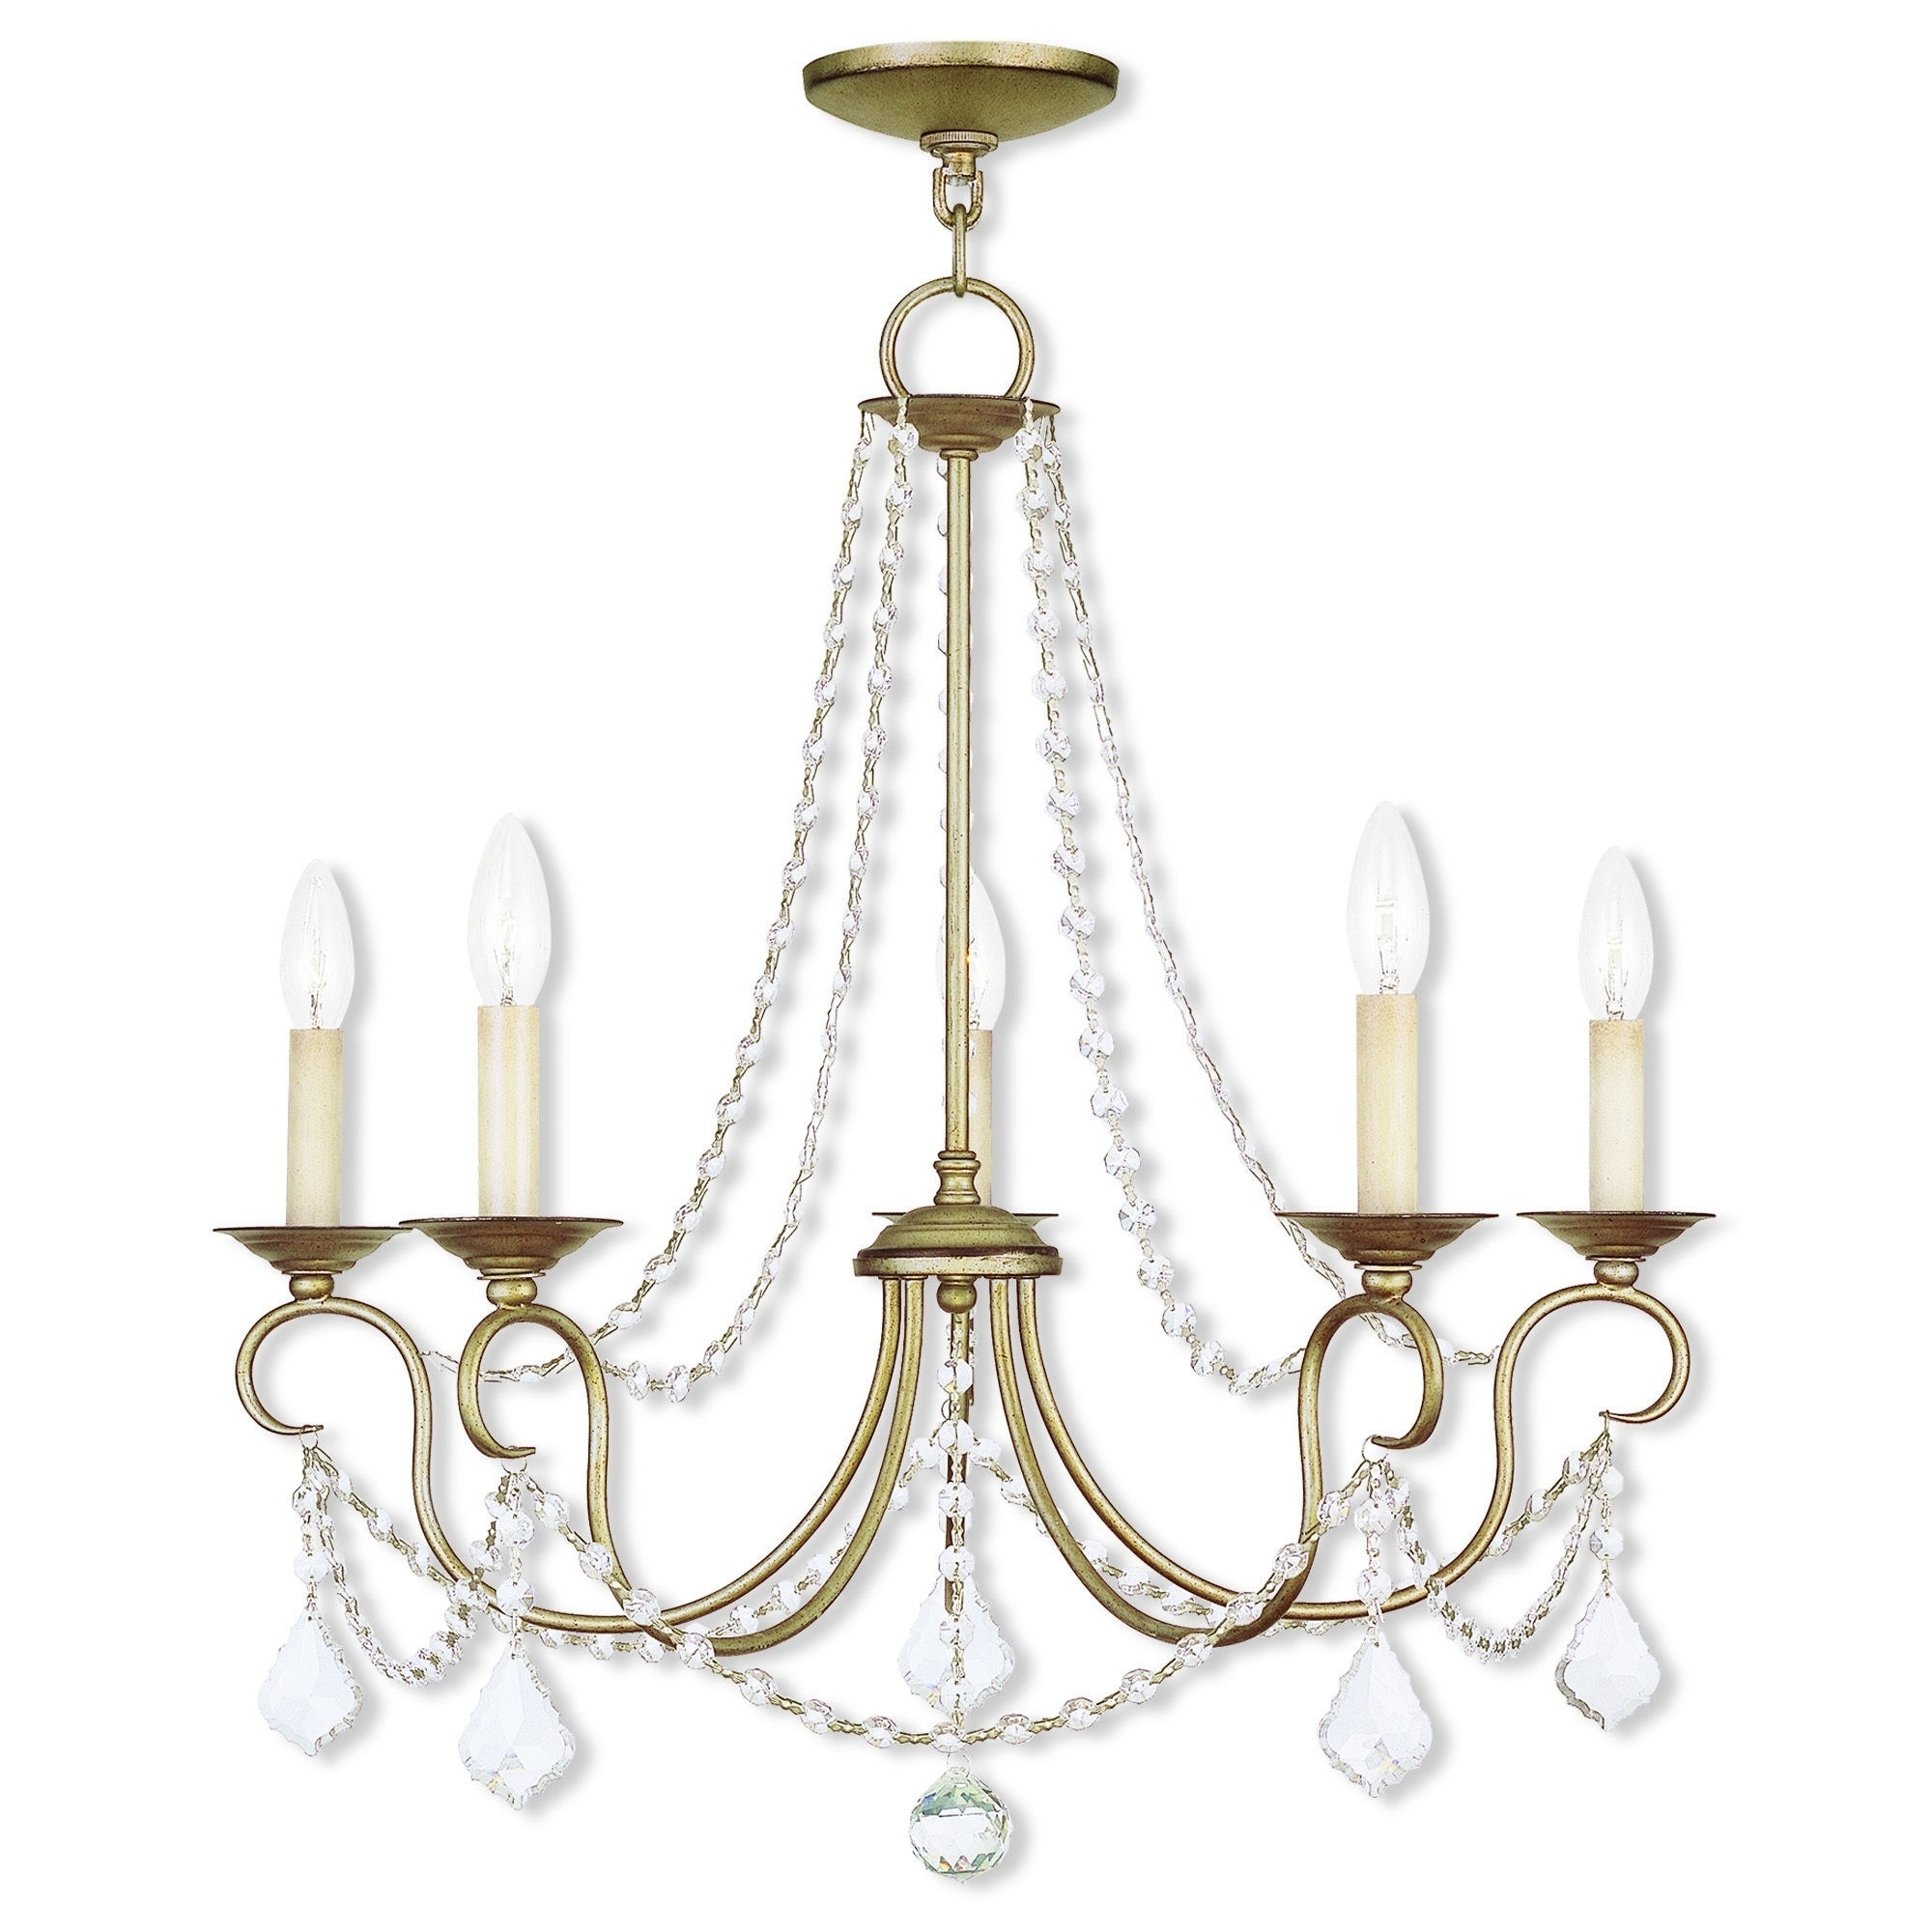 Livex lighting pennigton silver steel crystal 6 light antique leaf livex lighting pennigton silver steel crystal 6 light antique leaf chandelier free shipping today overstock 18837589 arubaitofo Choice Image